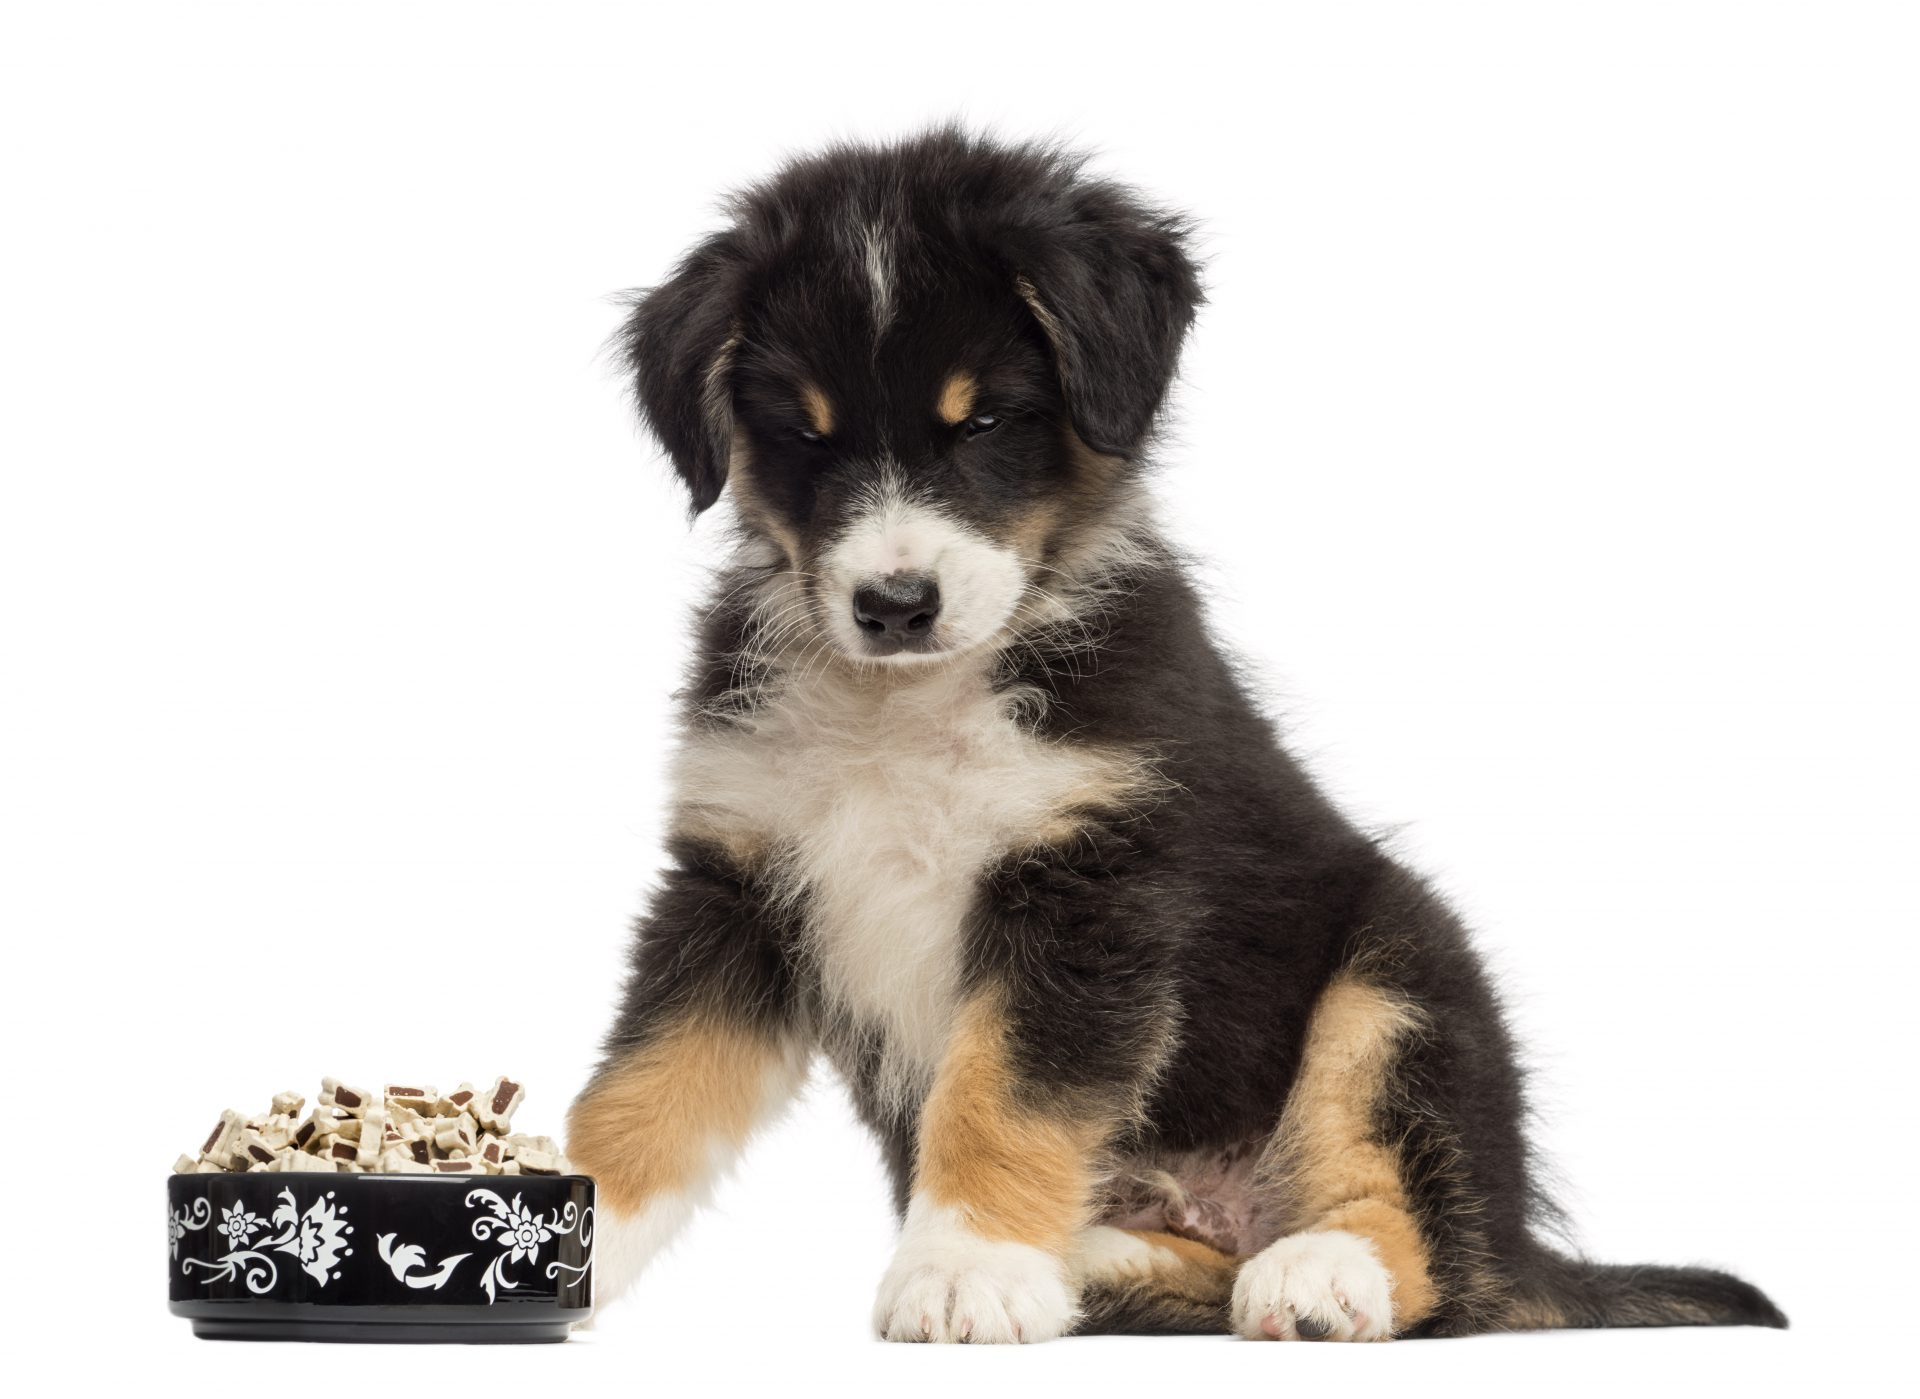 Foods Dogs Shouldn't Eat Dog with Bowl of Food Image